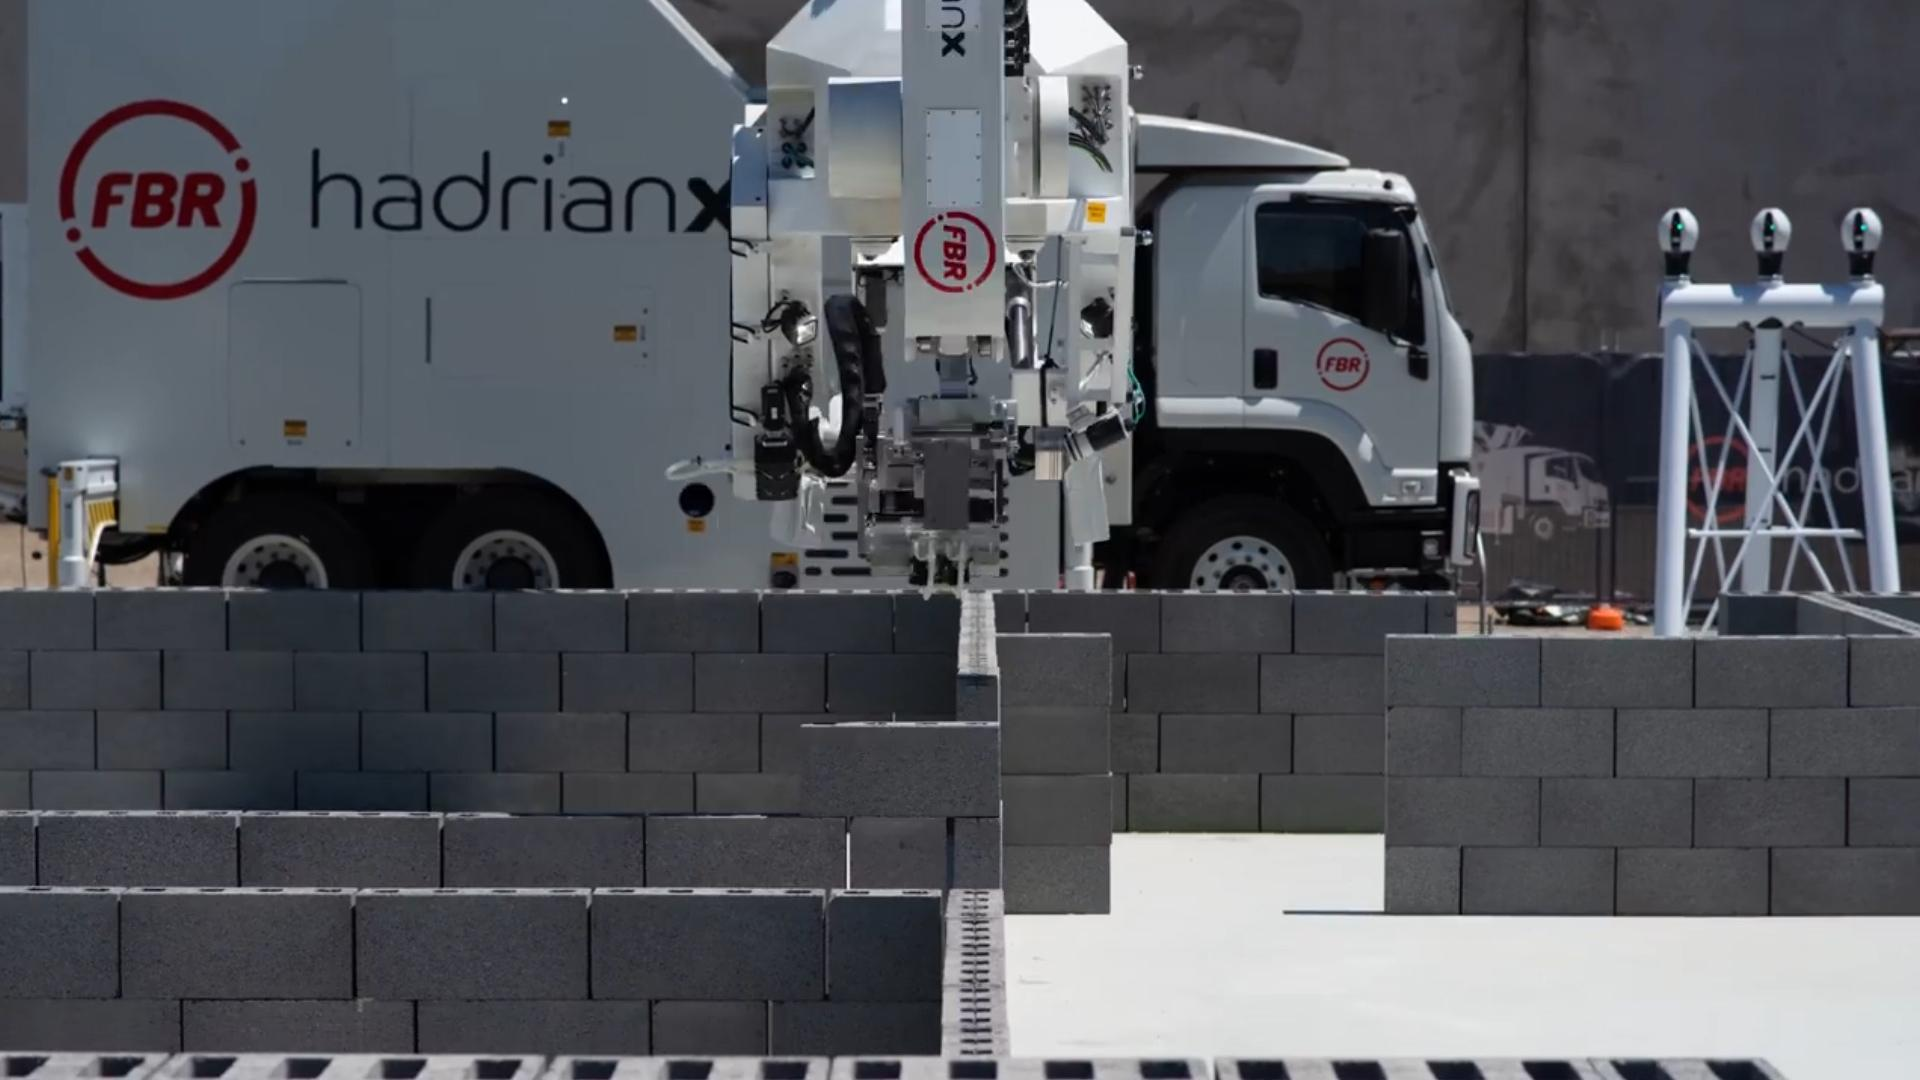 This robot can build a house in 3 days